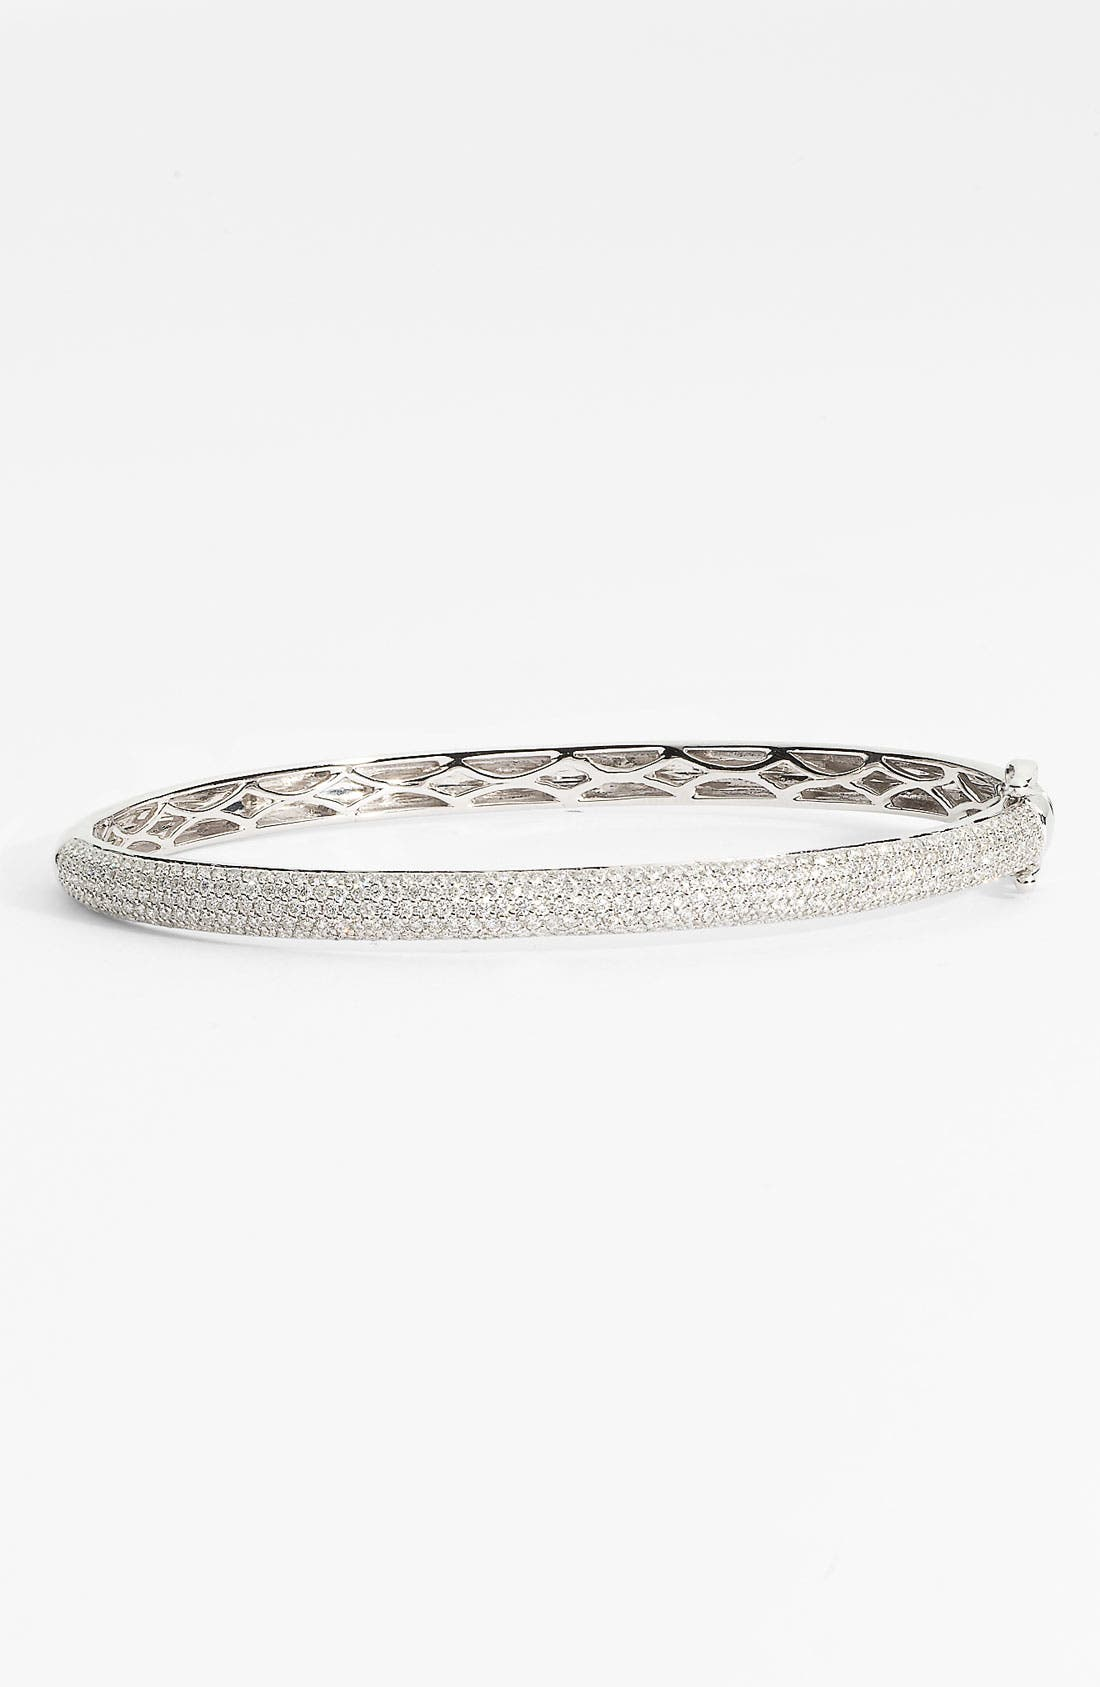 Alternate Image 1 Selected - Bony Levy 5-Row Pavé Diamond Bangle (Nordstrom Exclusive)